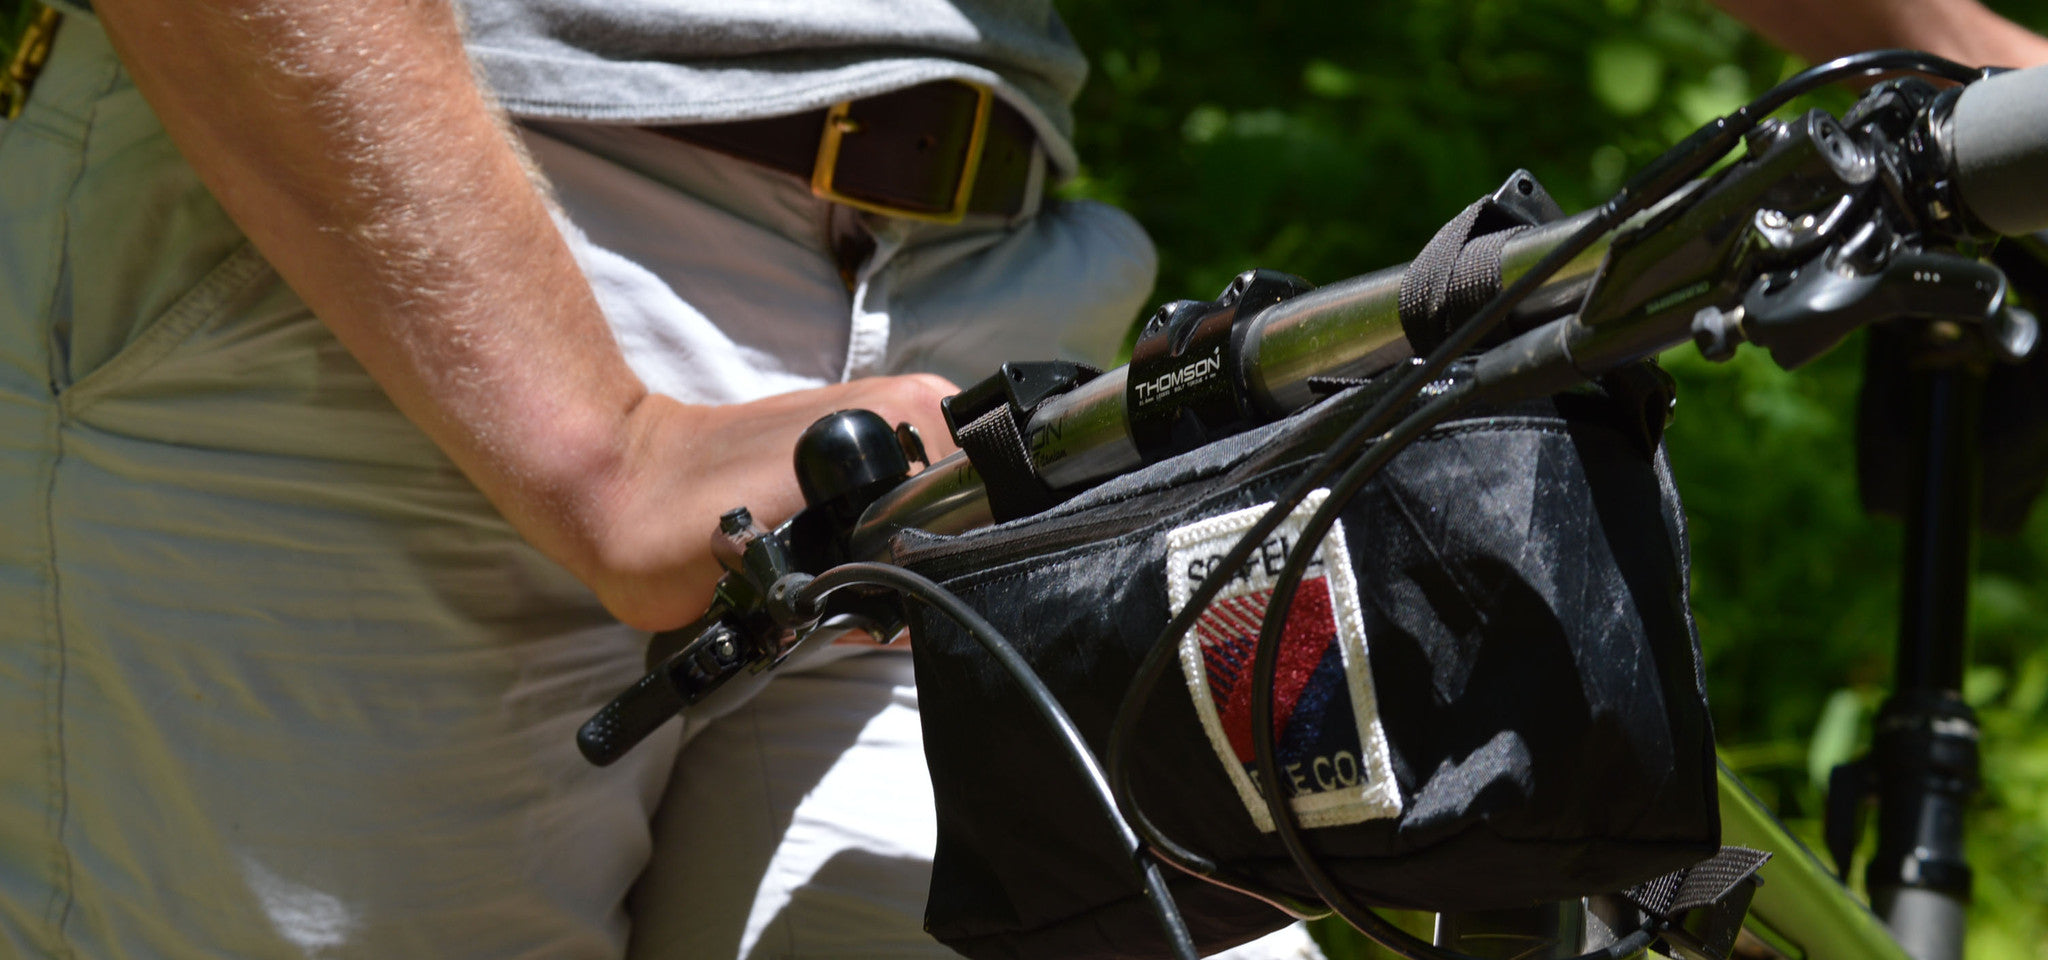 Handlebar Bag on No.22 Mountain Bike and Leather Belt